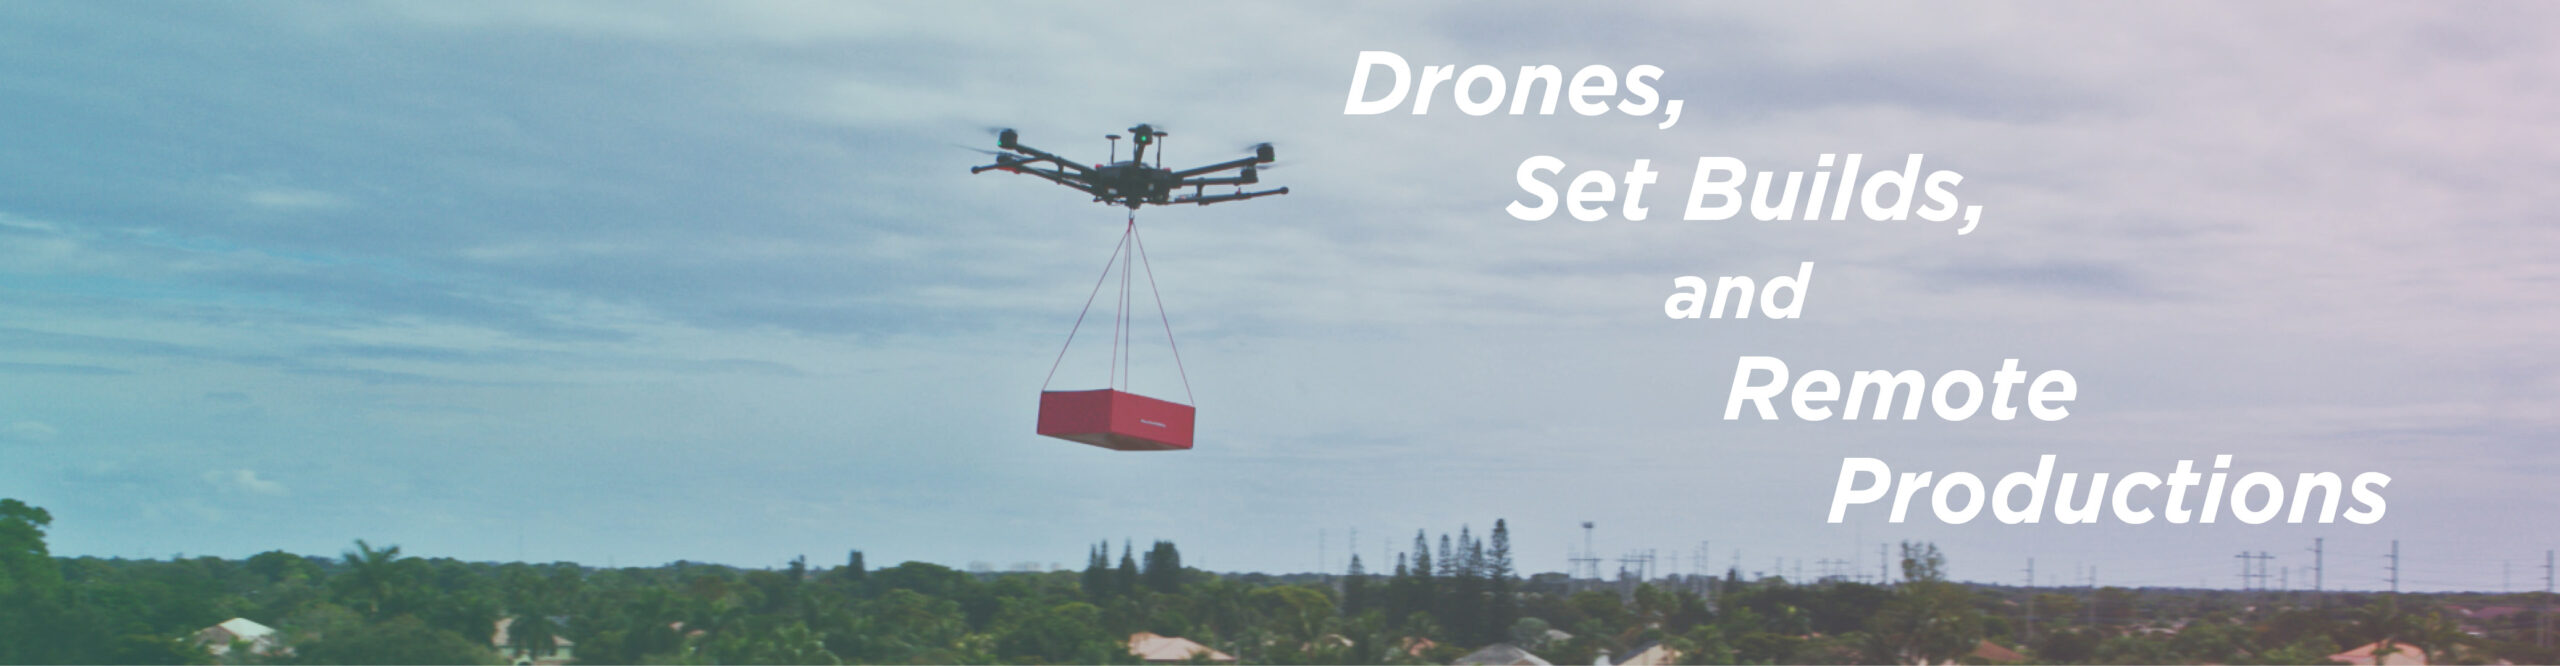 Drones, Set Builds and Remote Productions